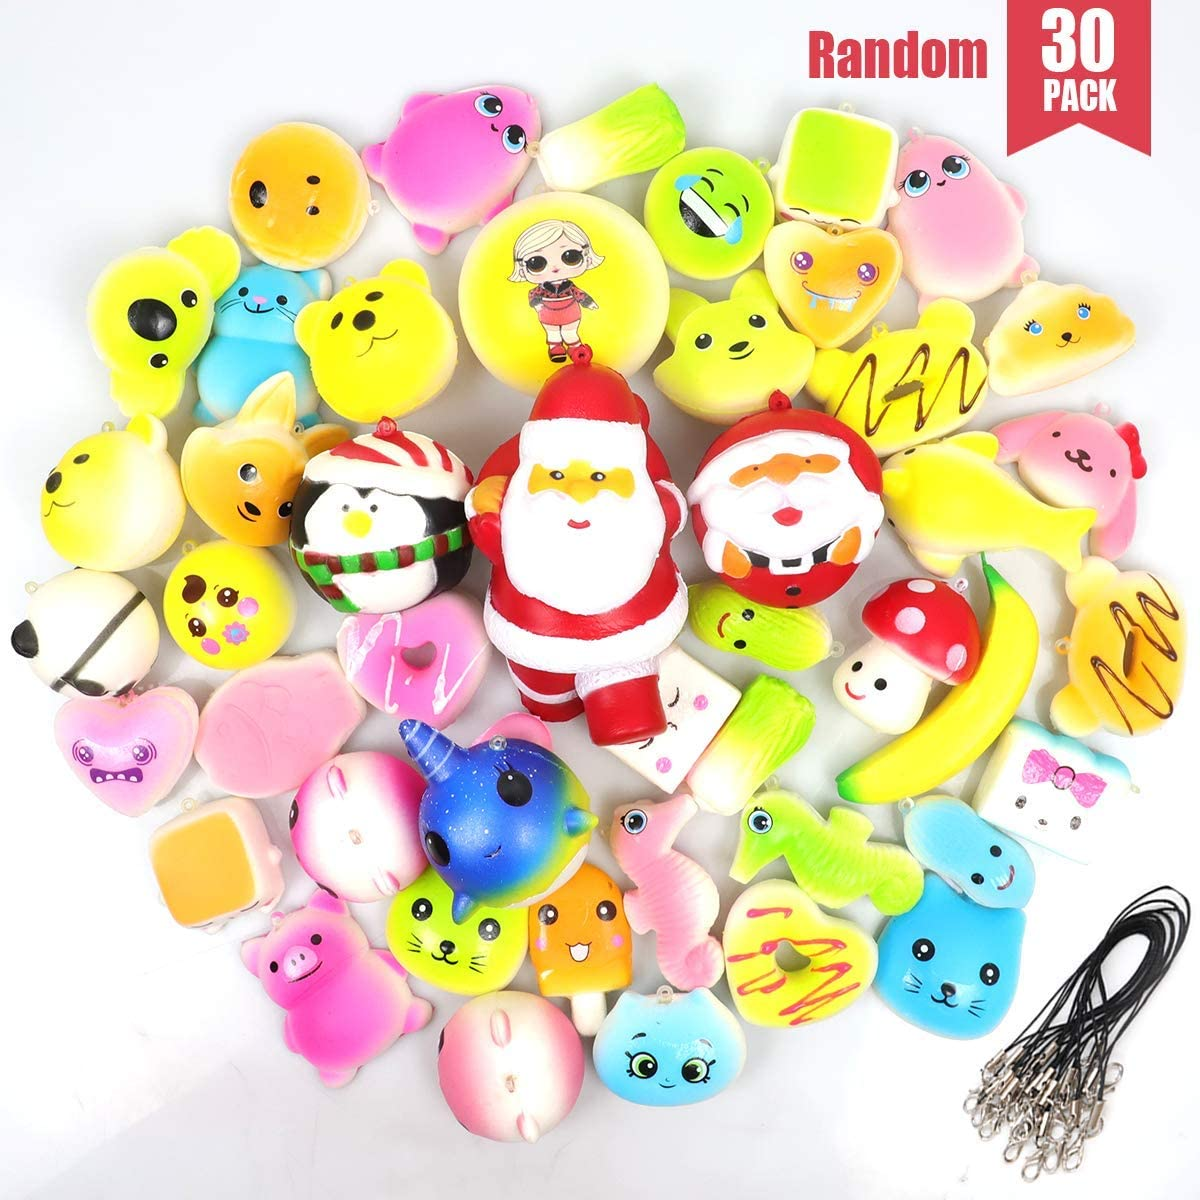 POKONBOY 30pcs Jumbo Squishies, Cream Scented Food/Animals/Donut Squishy Toys Soft Slow Rising Stress Relief Toys Backpack Keychains Birthday Gift Party Favors for Kids (Random)